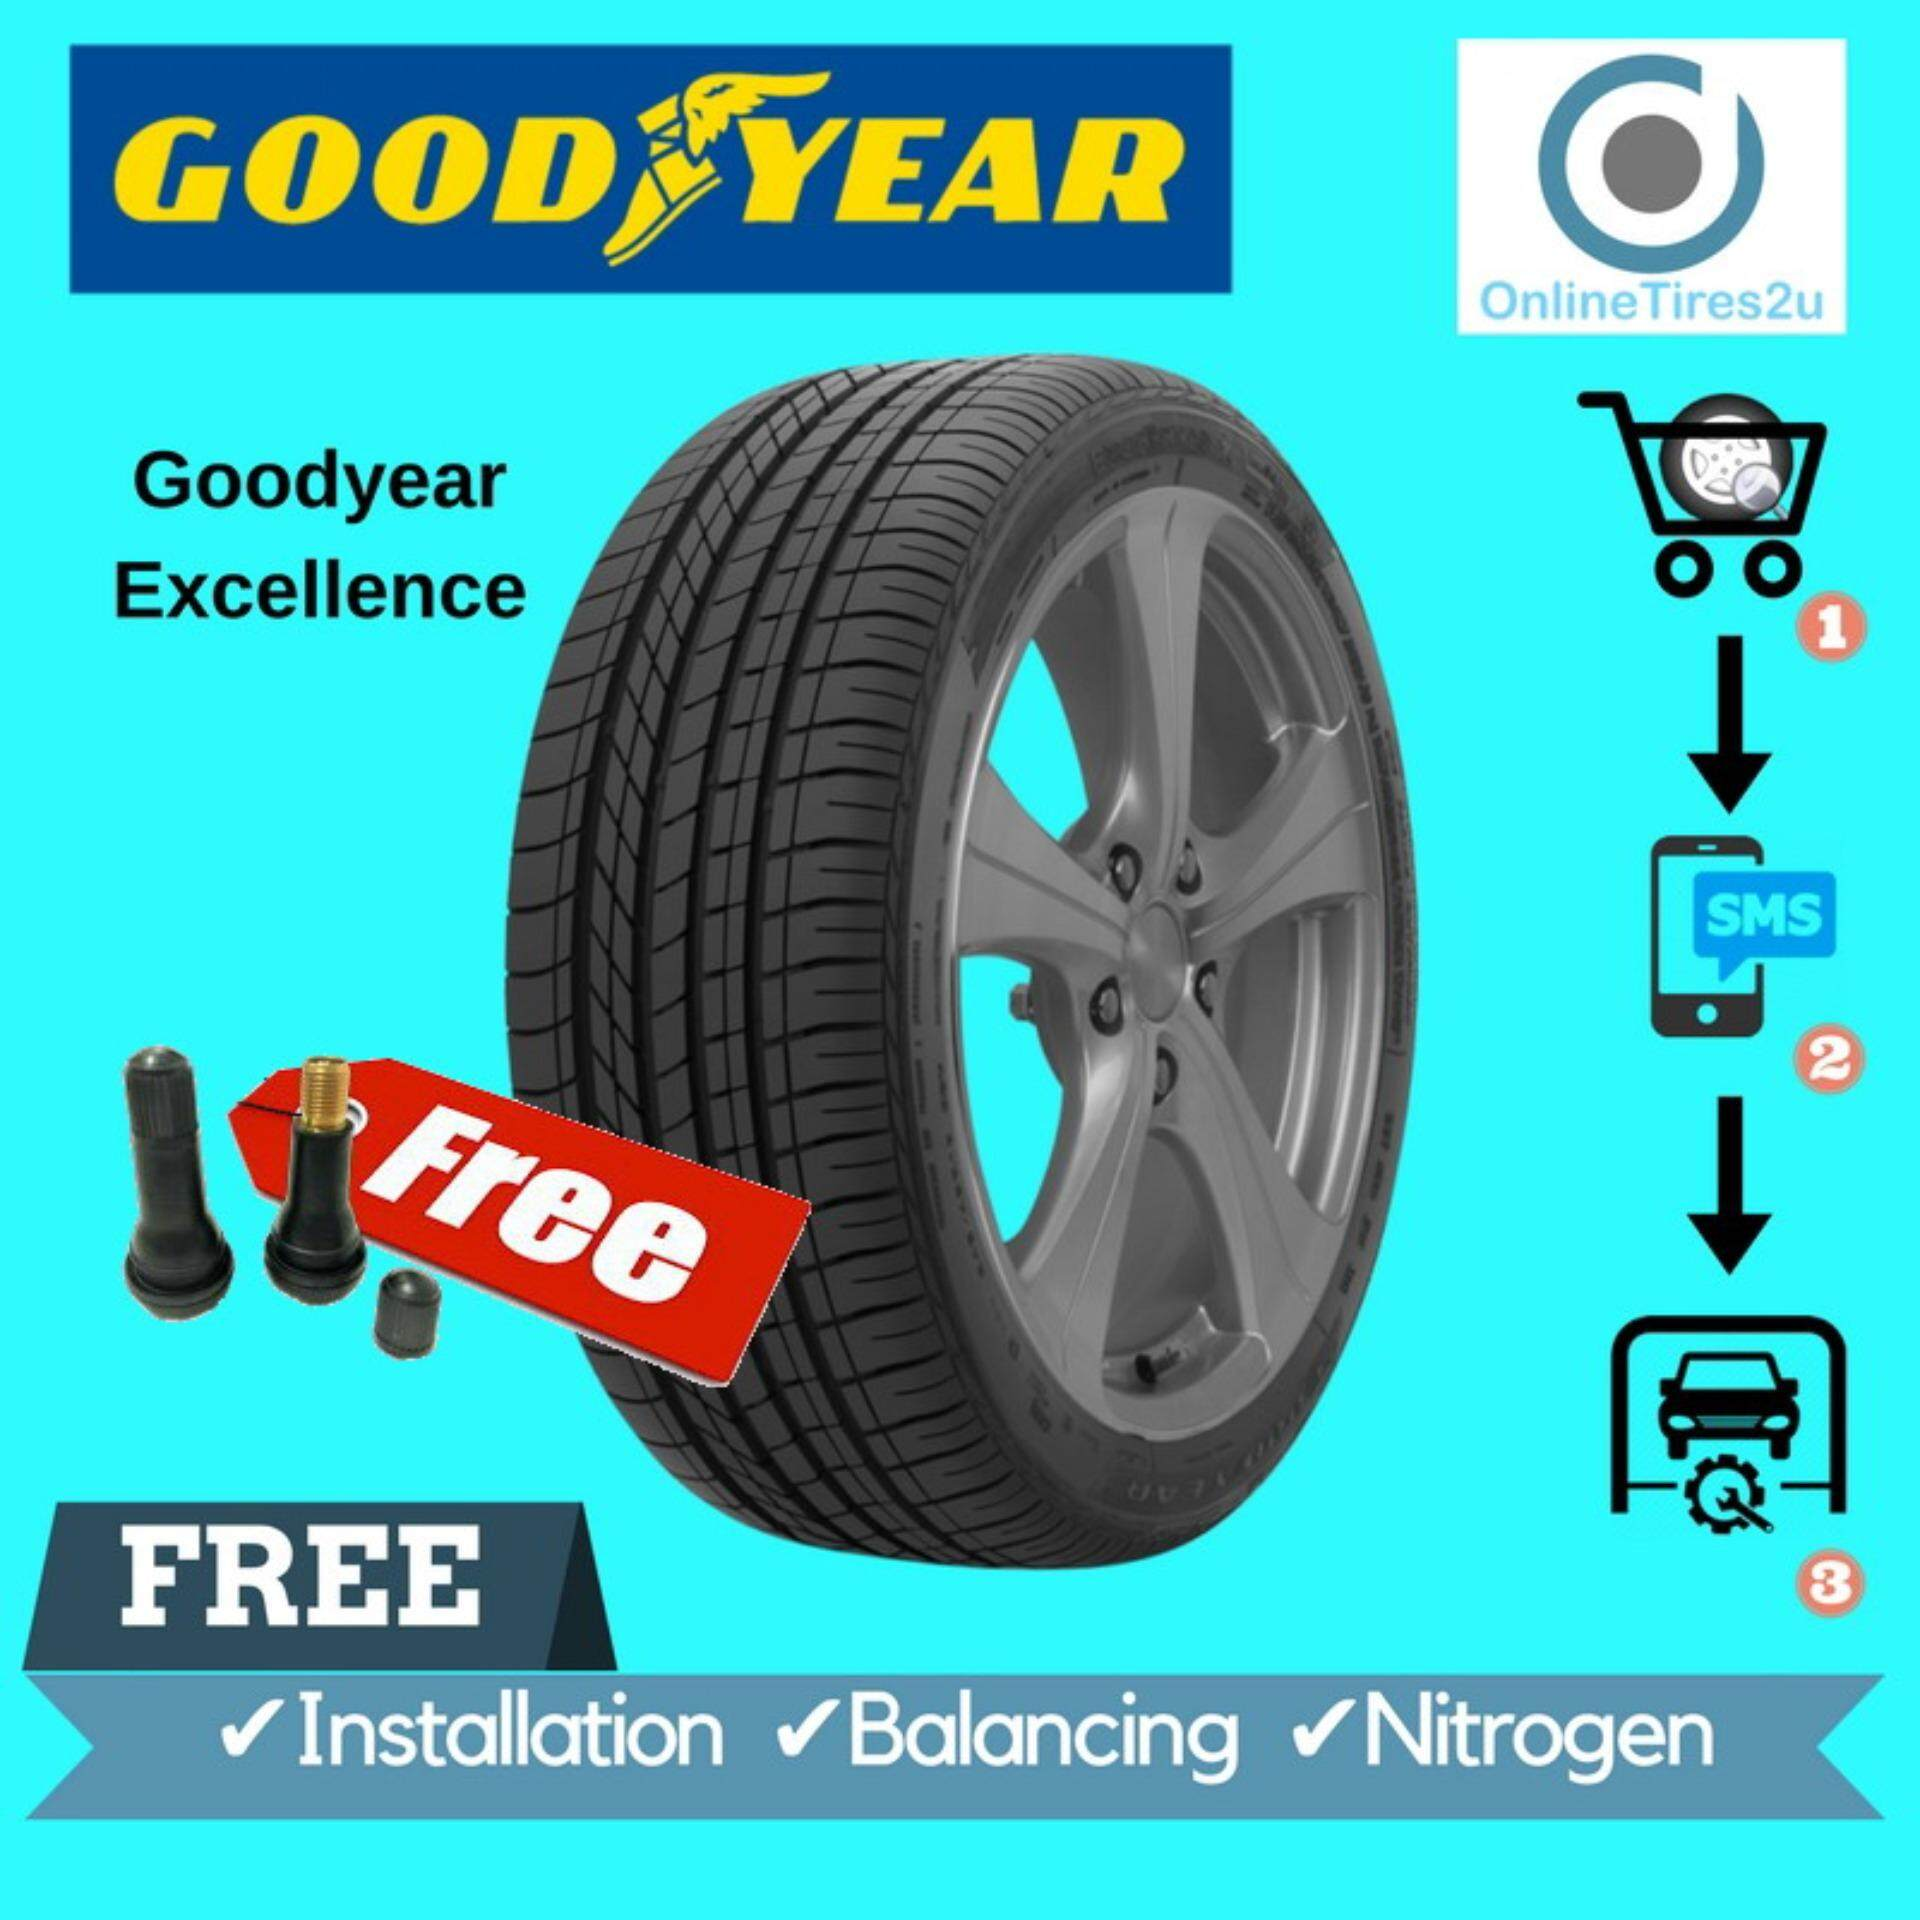 Goodyear Excellence - 215/50r17 (with Installation) By Onlinetires2u.